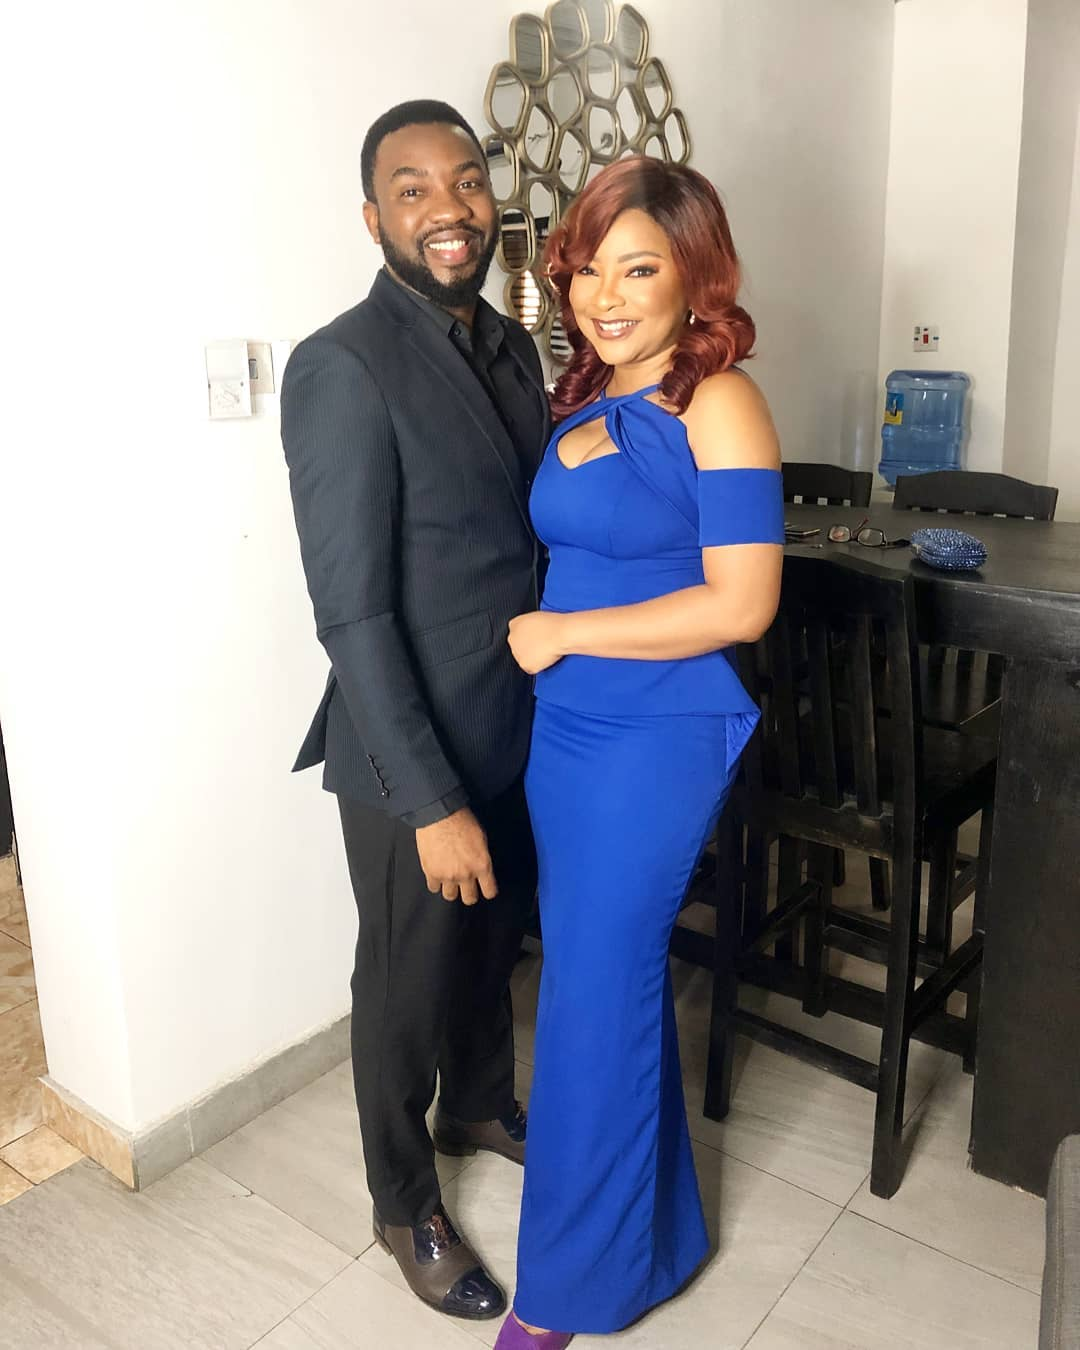 It was Date Night for lovebirds Linda Ejiofor & Ibrahim Suleiman Last Night 😍